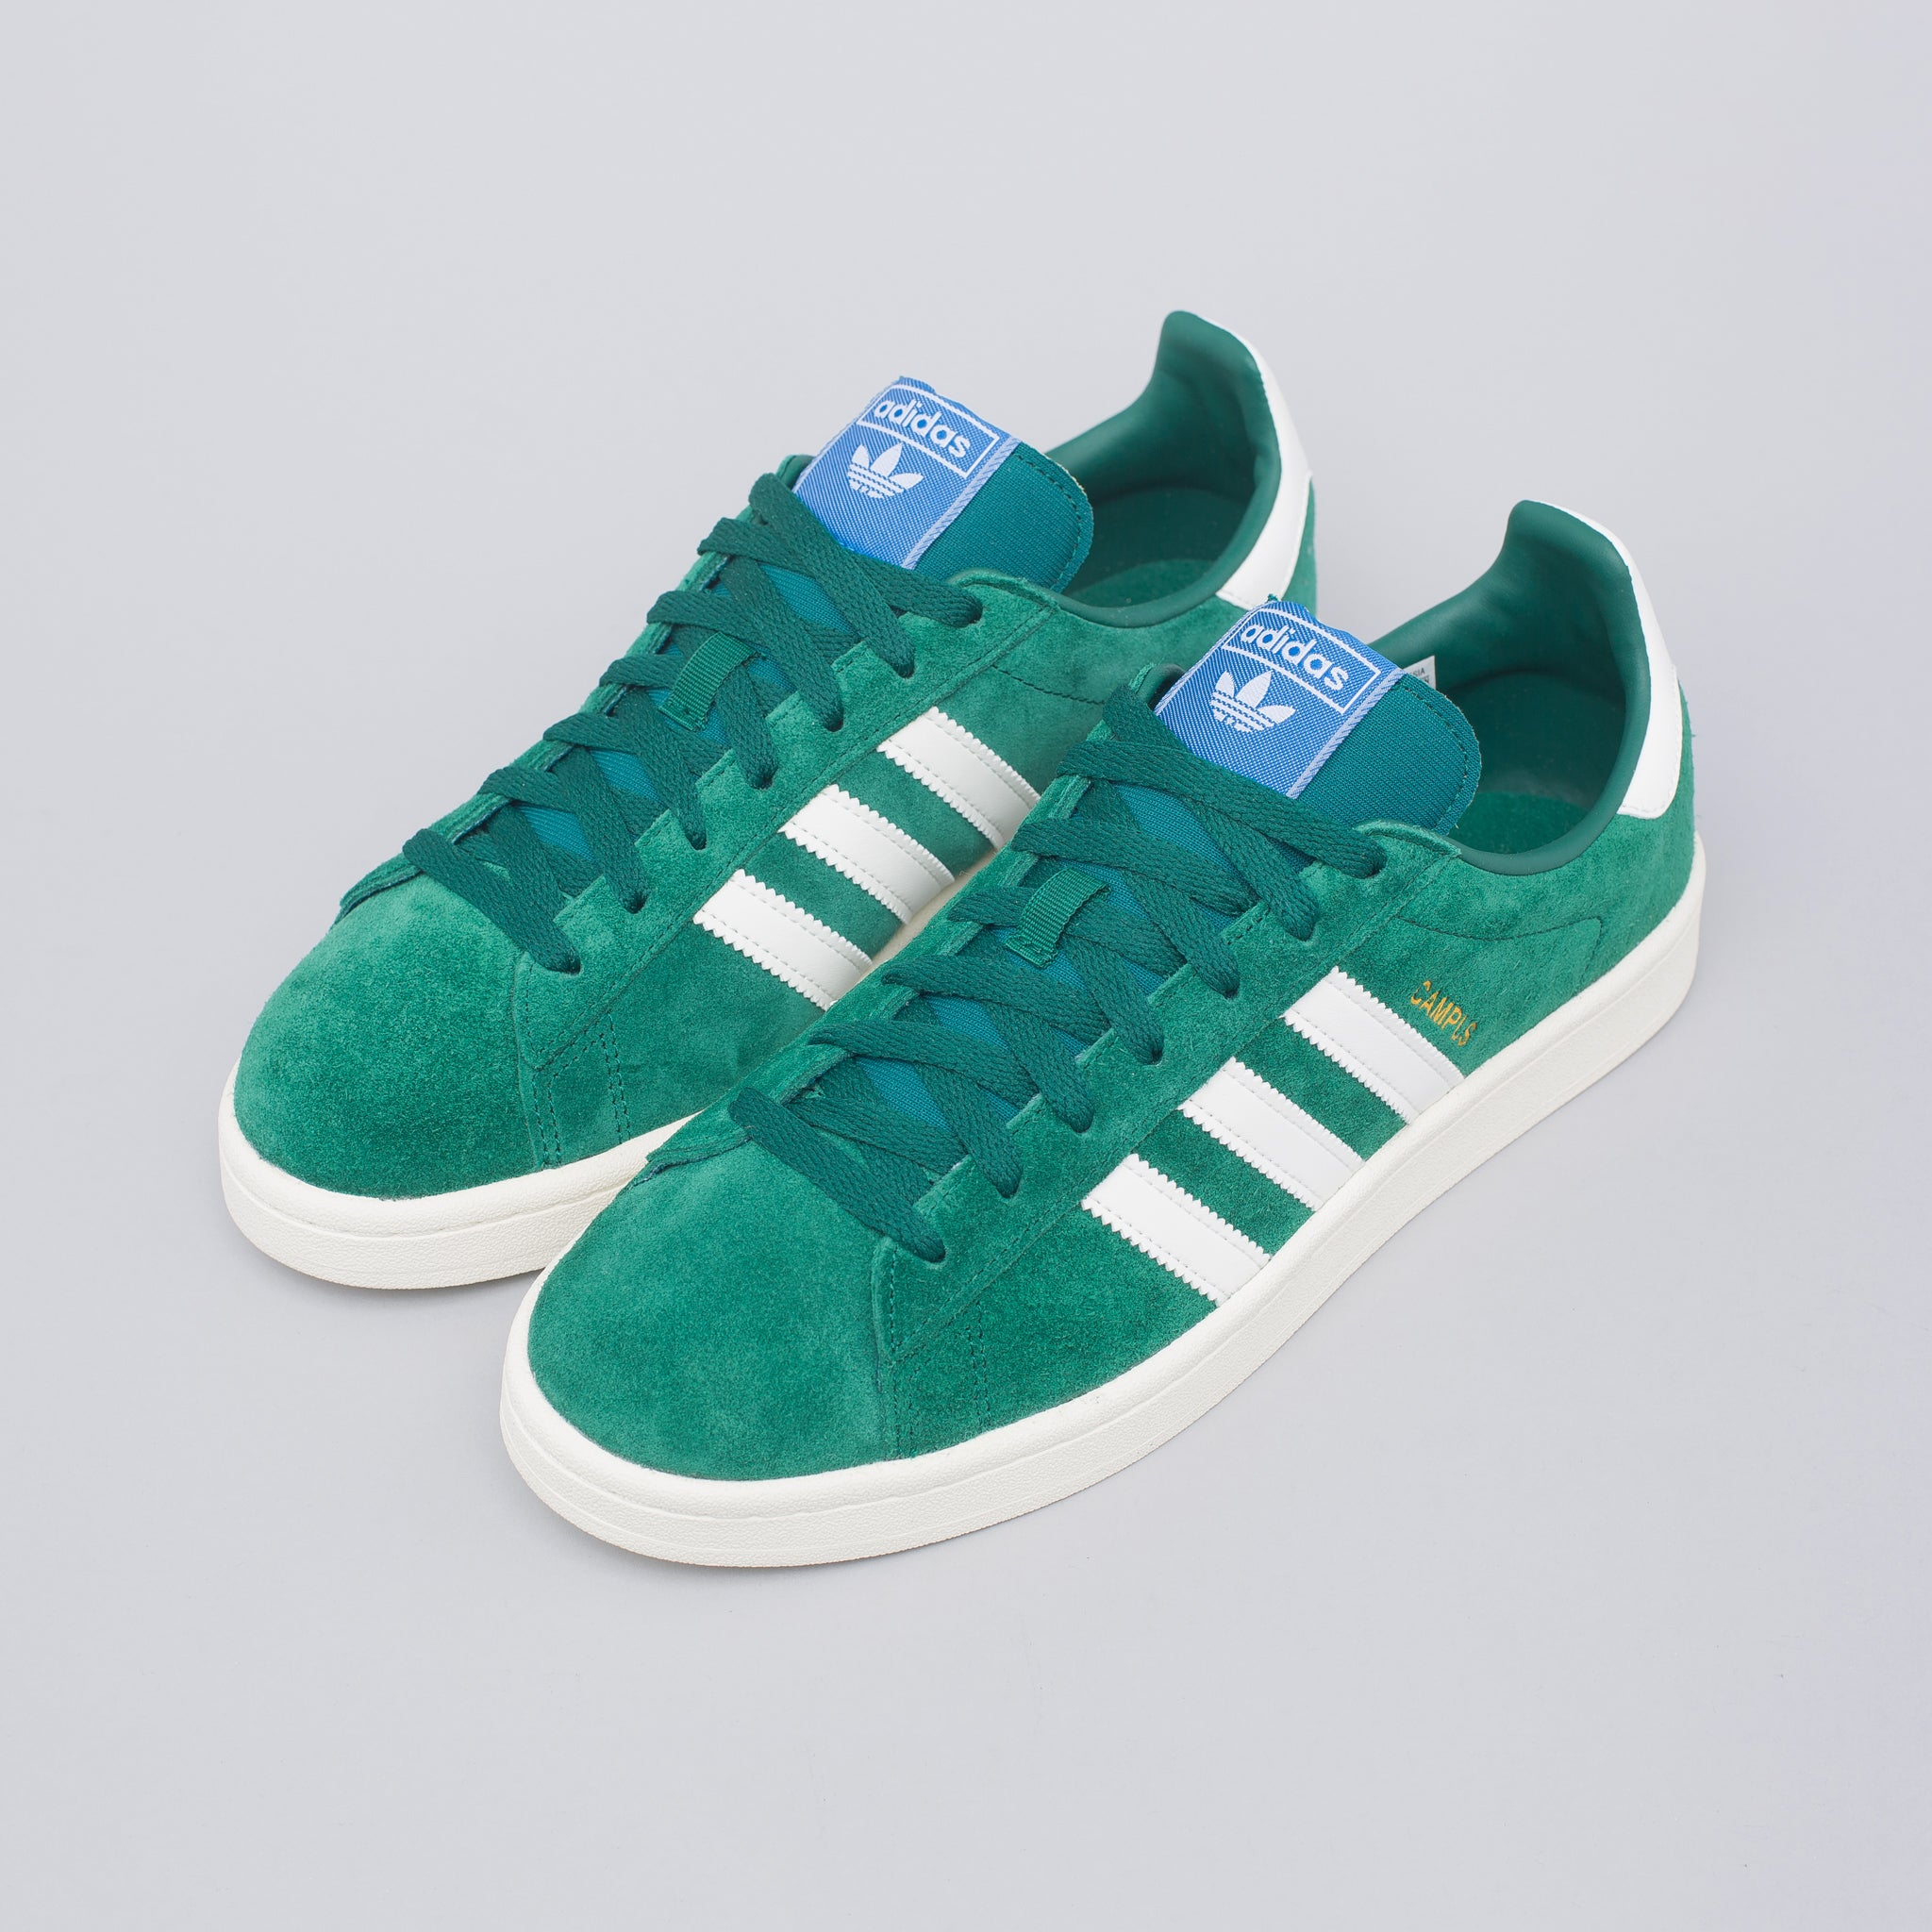 b286e7d31 adidas Campus Shoe in Green Gold